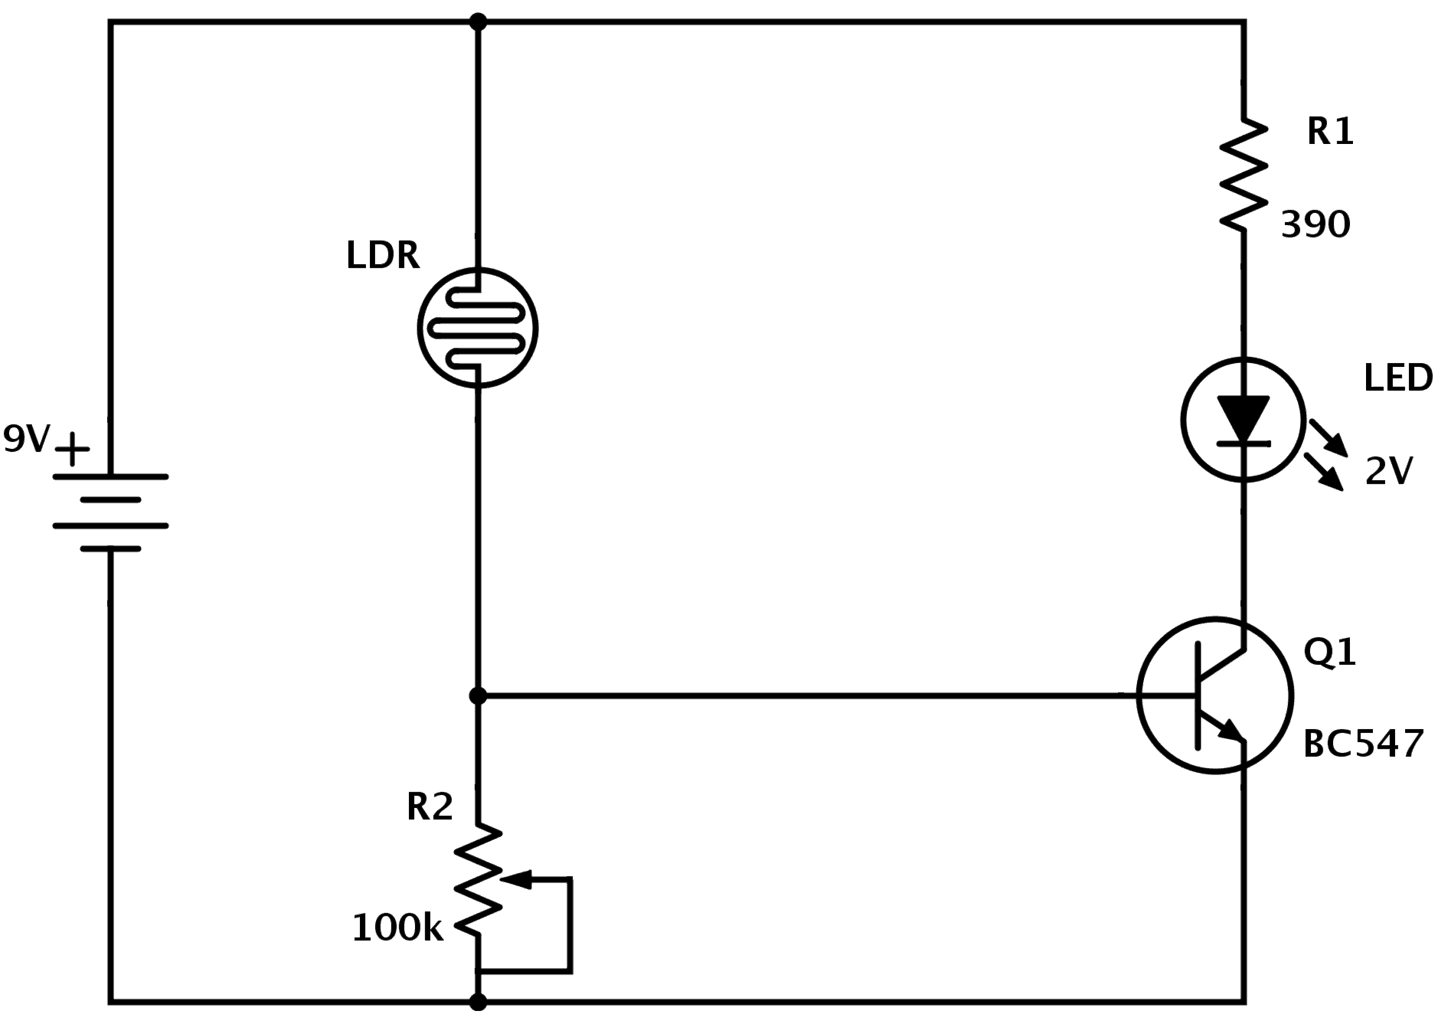 Ldr Circuit Diagram Build Electronic Circuits Strip Led Sign Wiring